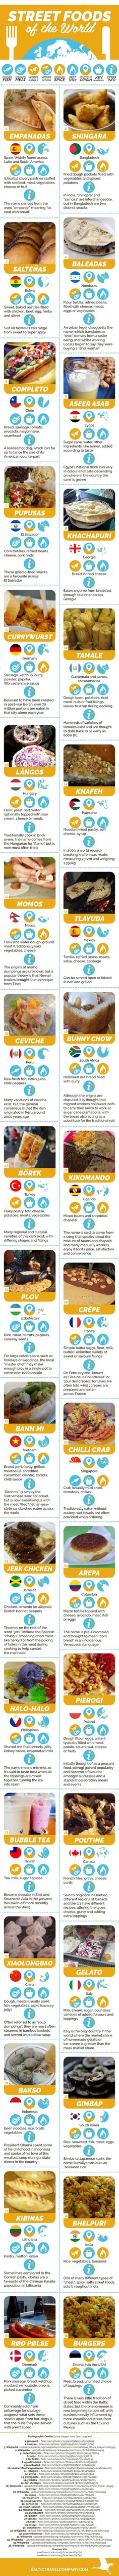 Street Foods of the World Infographic Travel Tips Tricks Hacks Advice Gadgets, Itinerary, City/Country Guide, Bucket List Trips, Wanderlust, Family Vacation, Holiday, Break, Honeymoon, Nature, History, Explore, Escape, Getaway, Adventure, Foodie